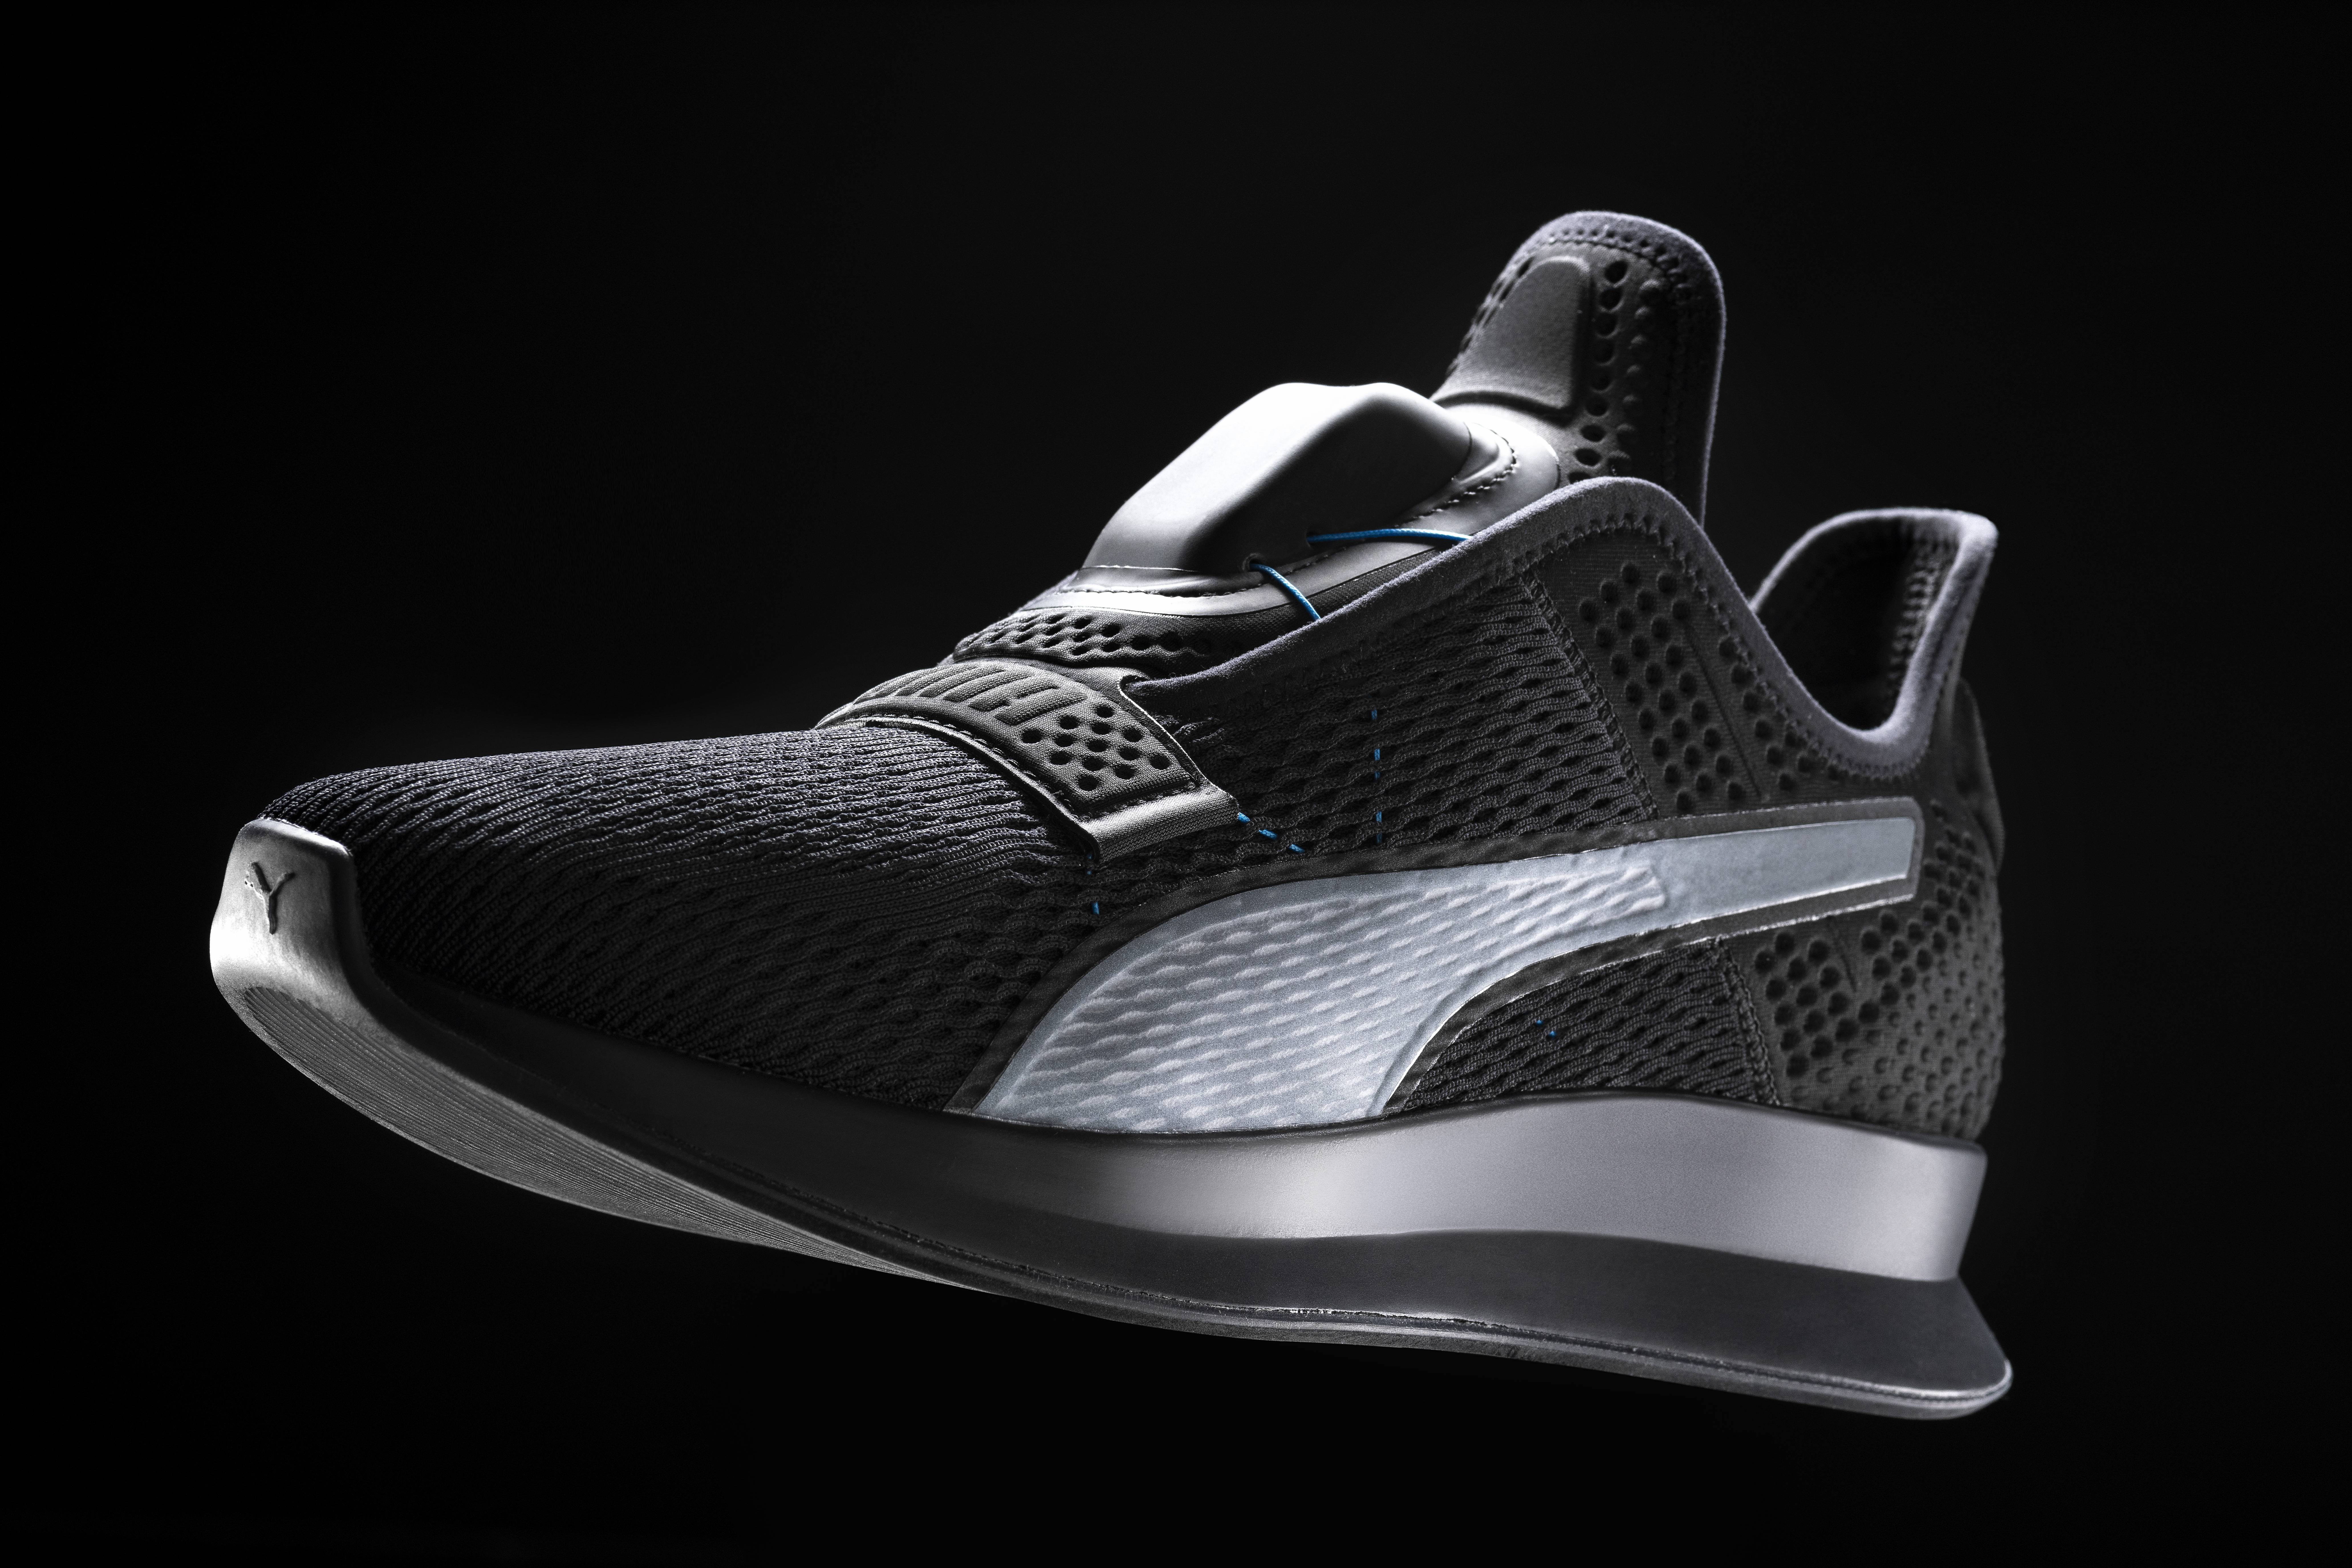 Puma unveiled its self-lacing sneaker, the Puma FI.